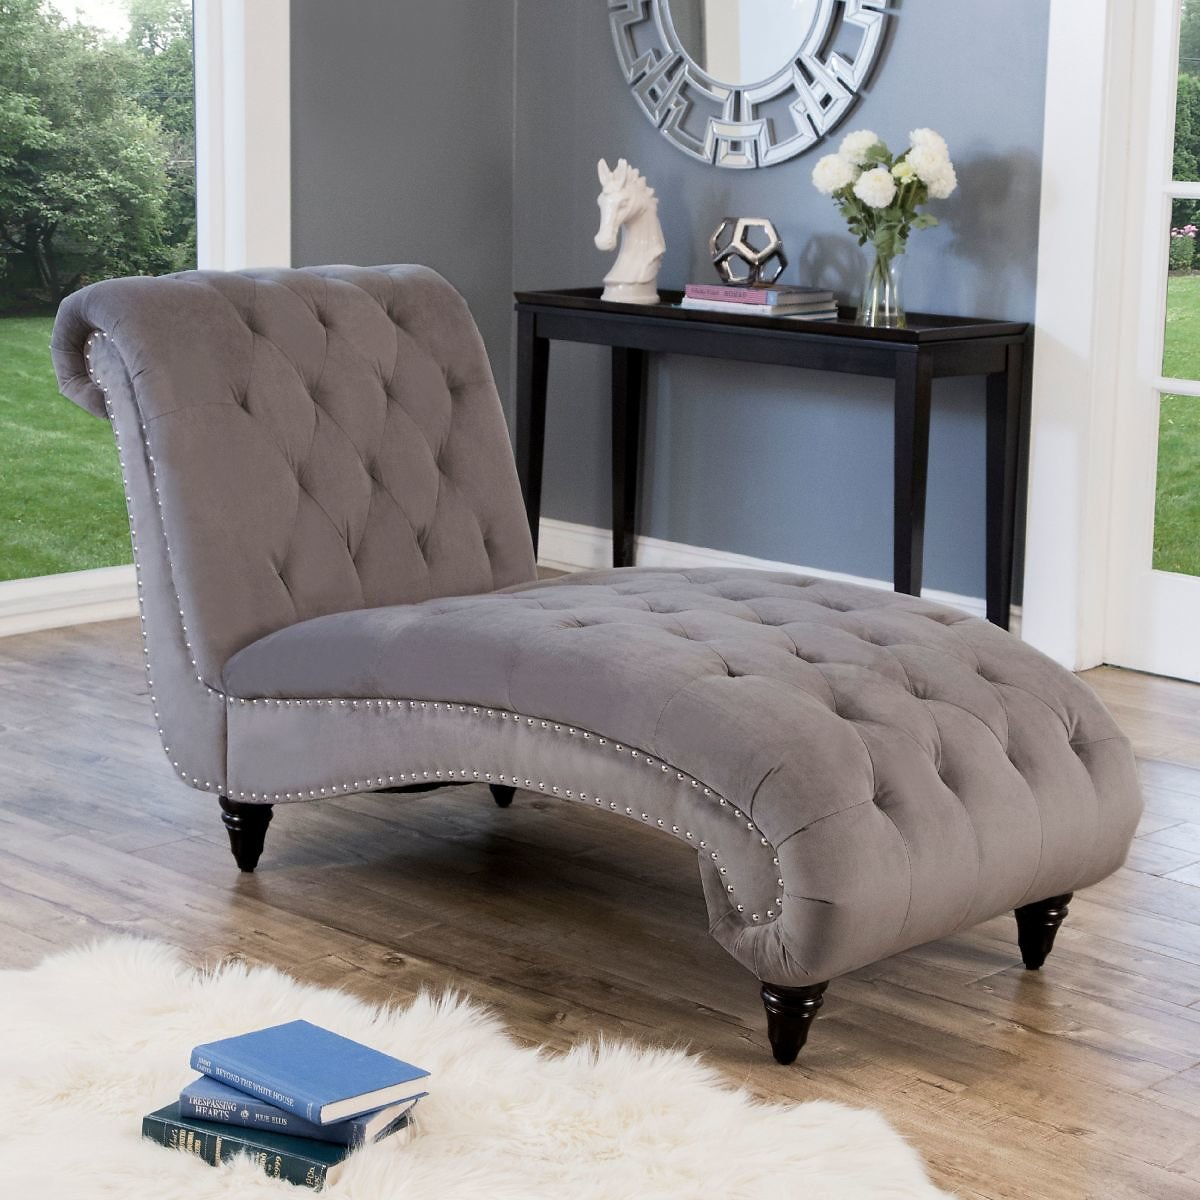 Devon & Claire Martin Tufted Fabric Chaise Lounge, Gray